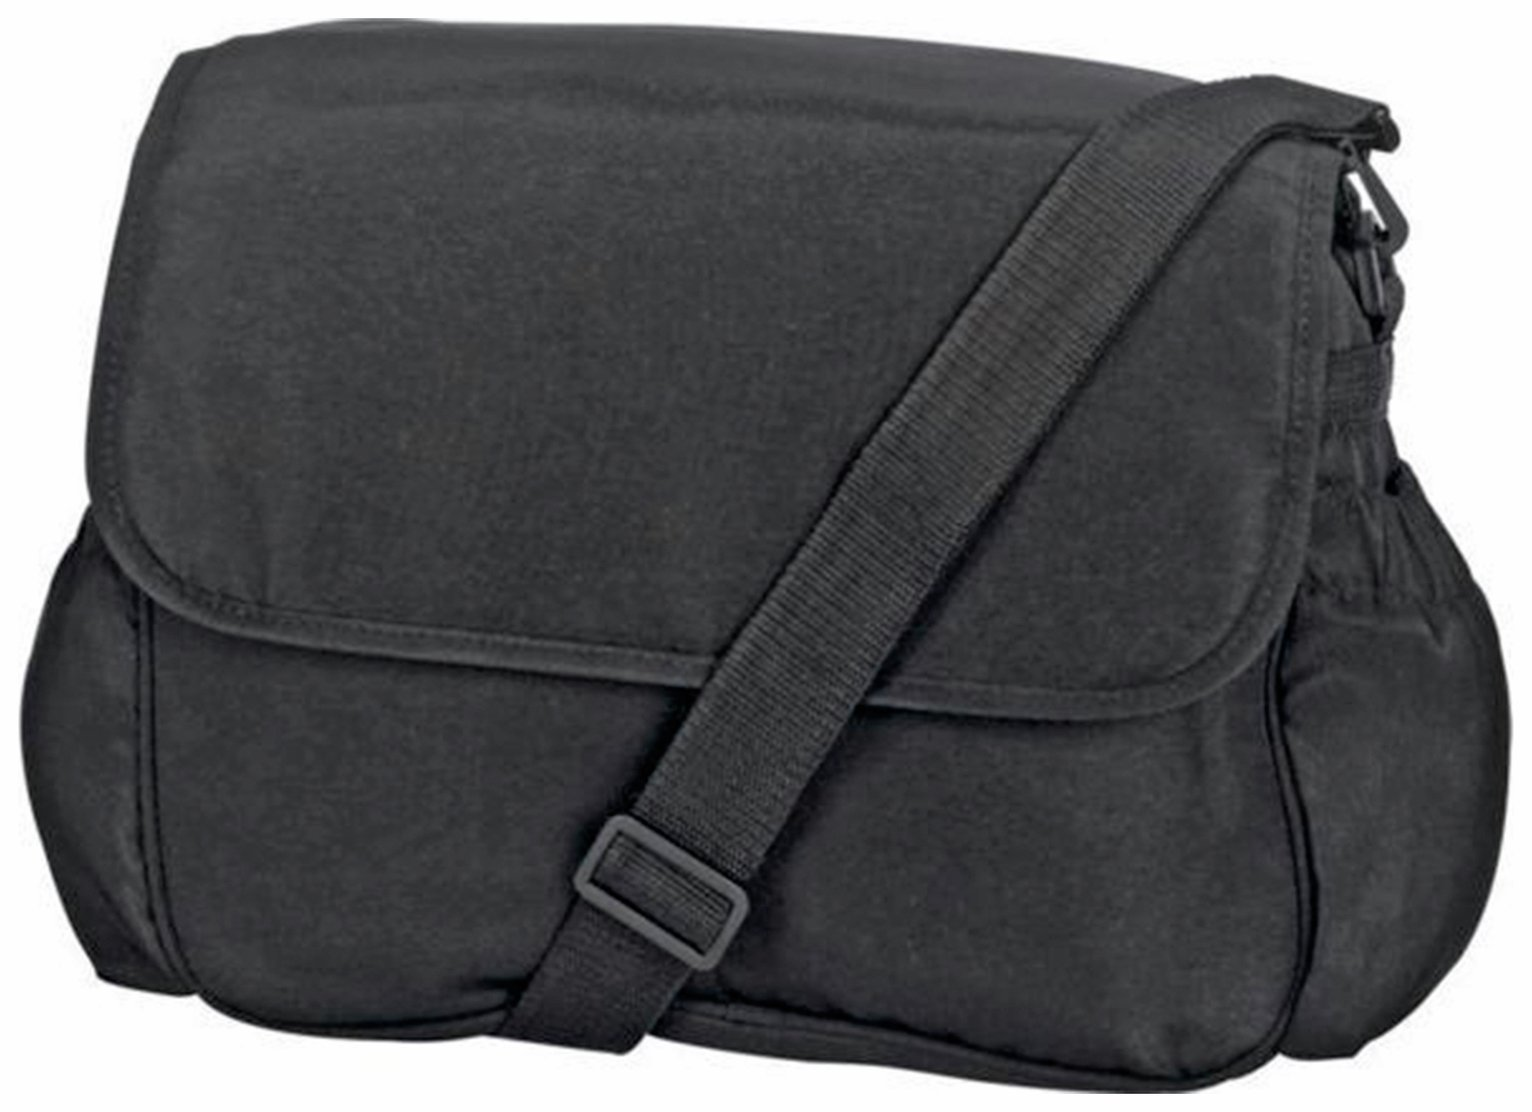 Cuggl Changing Bag - Black